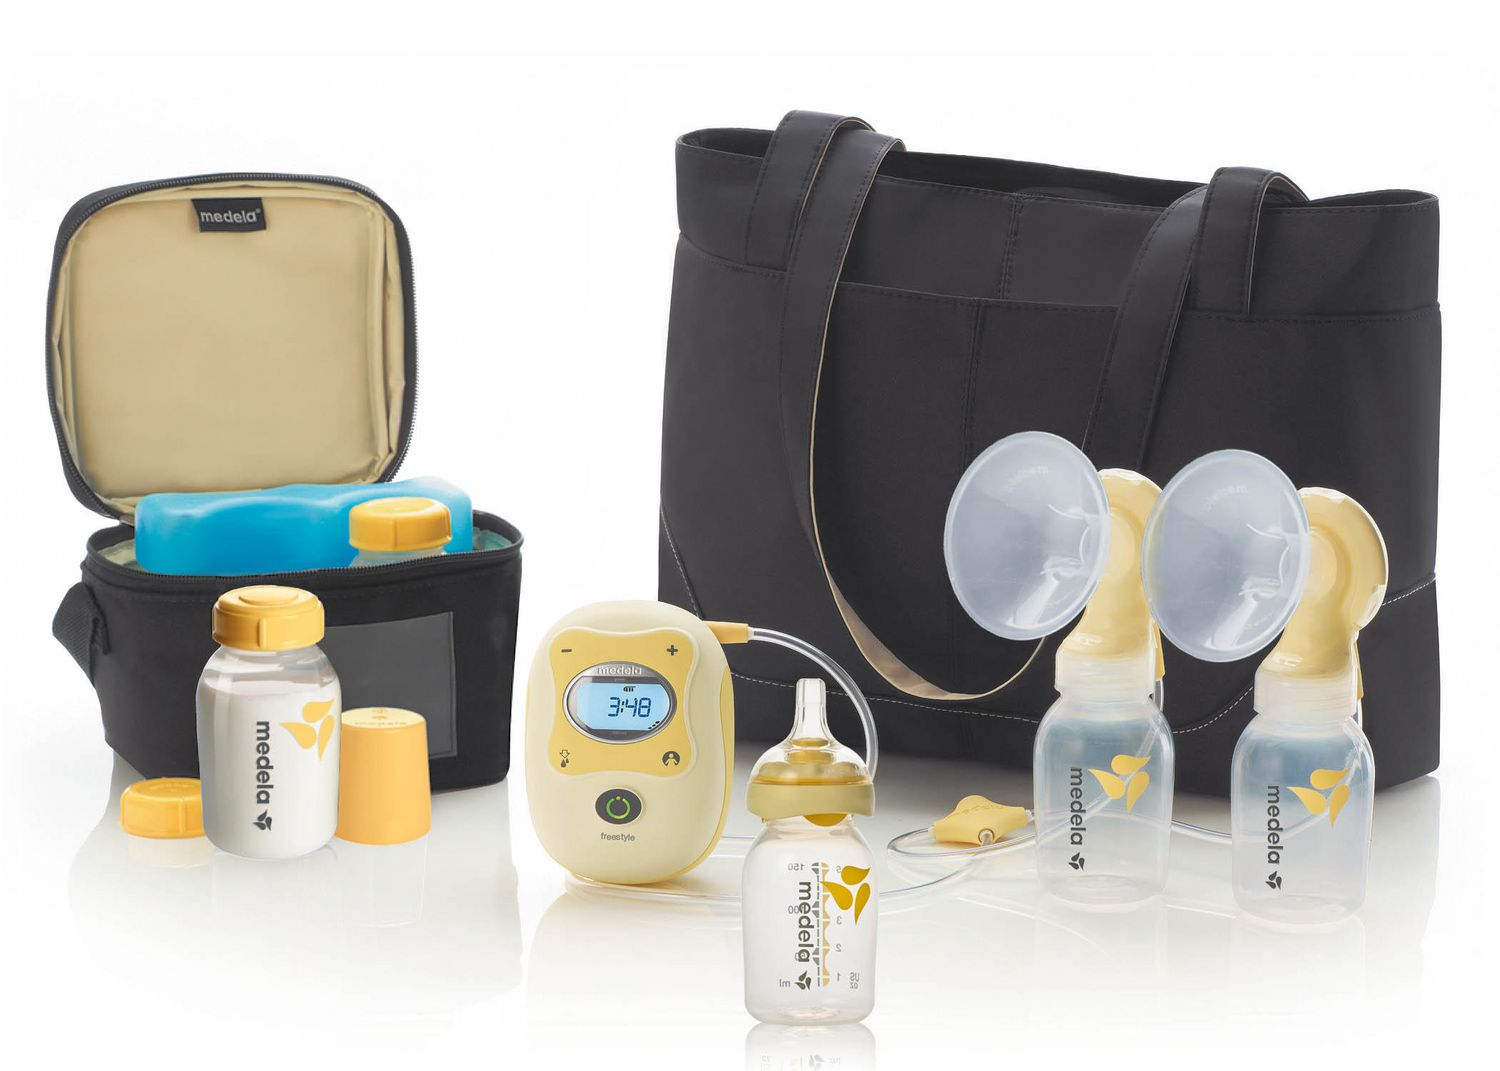 Medela Freestyle Double Electric Breast pump - image 1 of 6 zoomed image